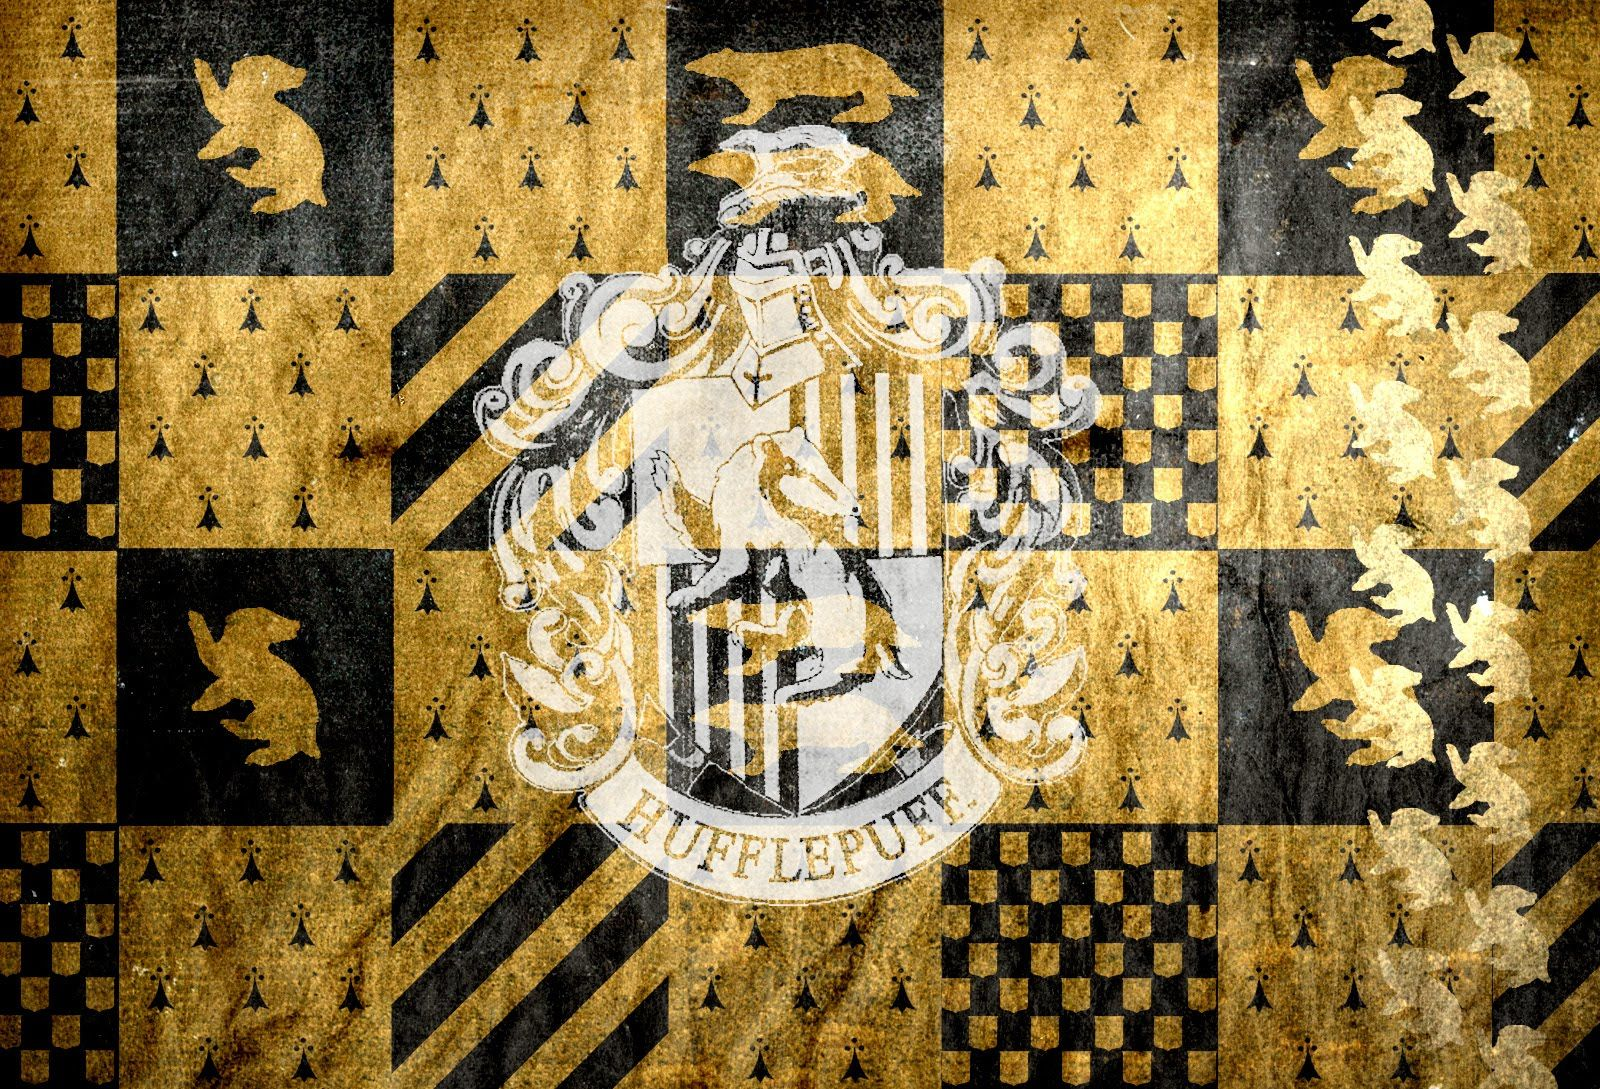 Harry Potter image Hufflepuff wall HD wallpapers and backgrounds